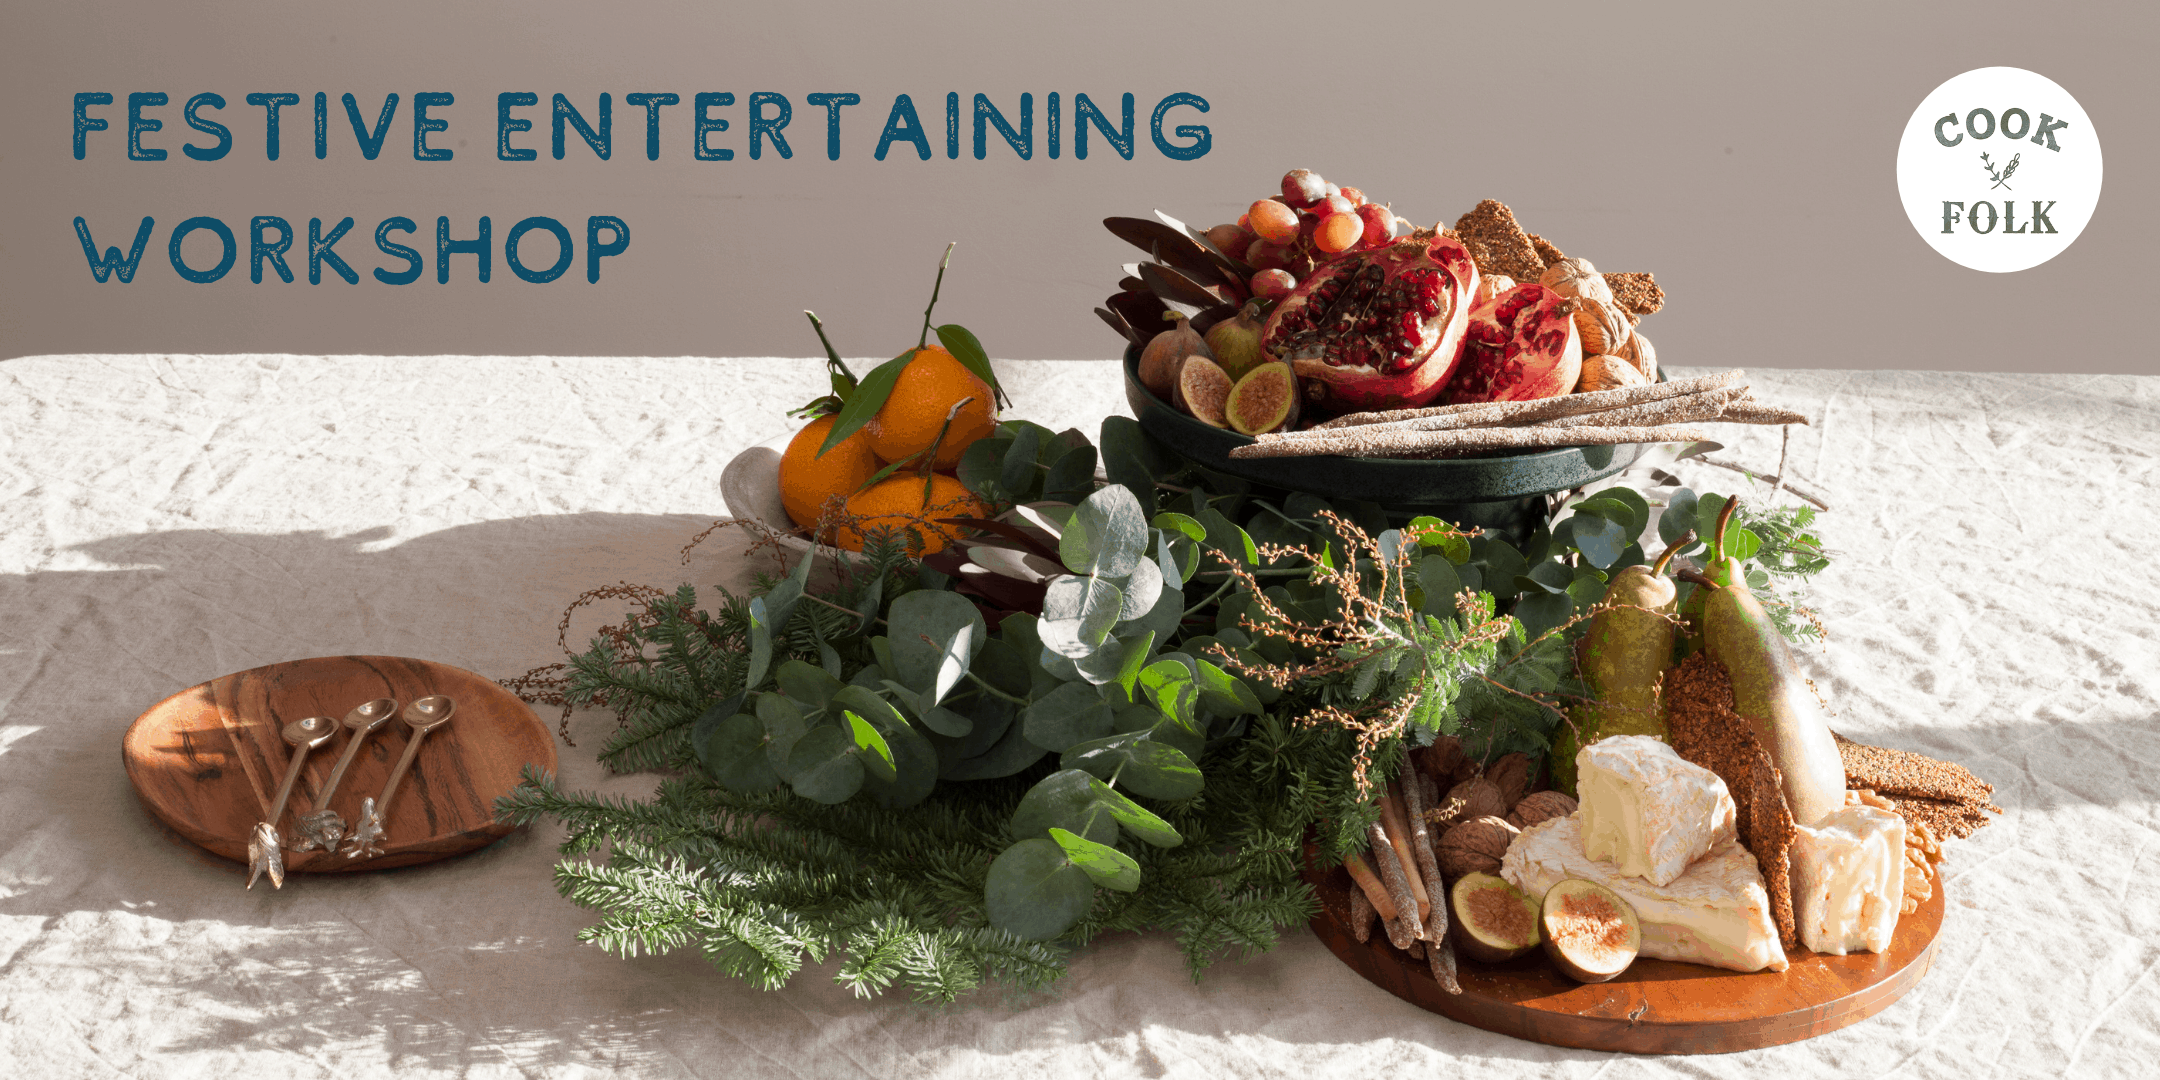 Festive Entertaining Cooking Workshop